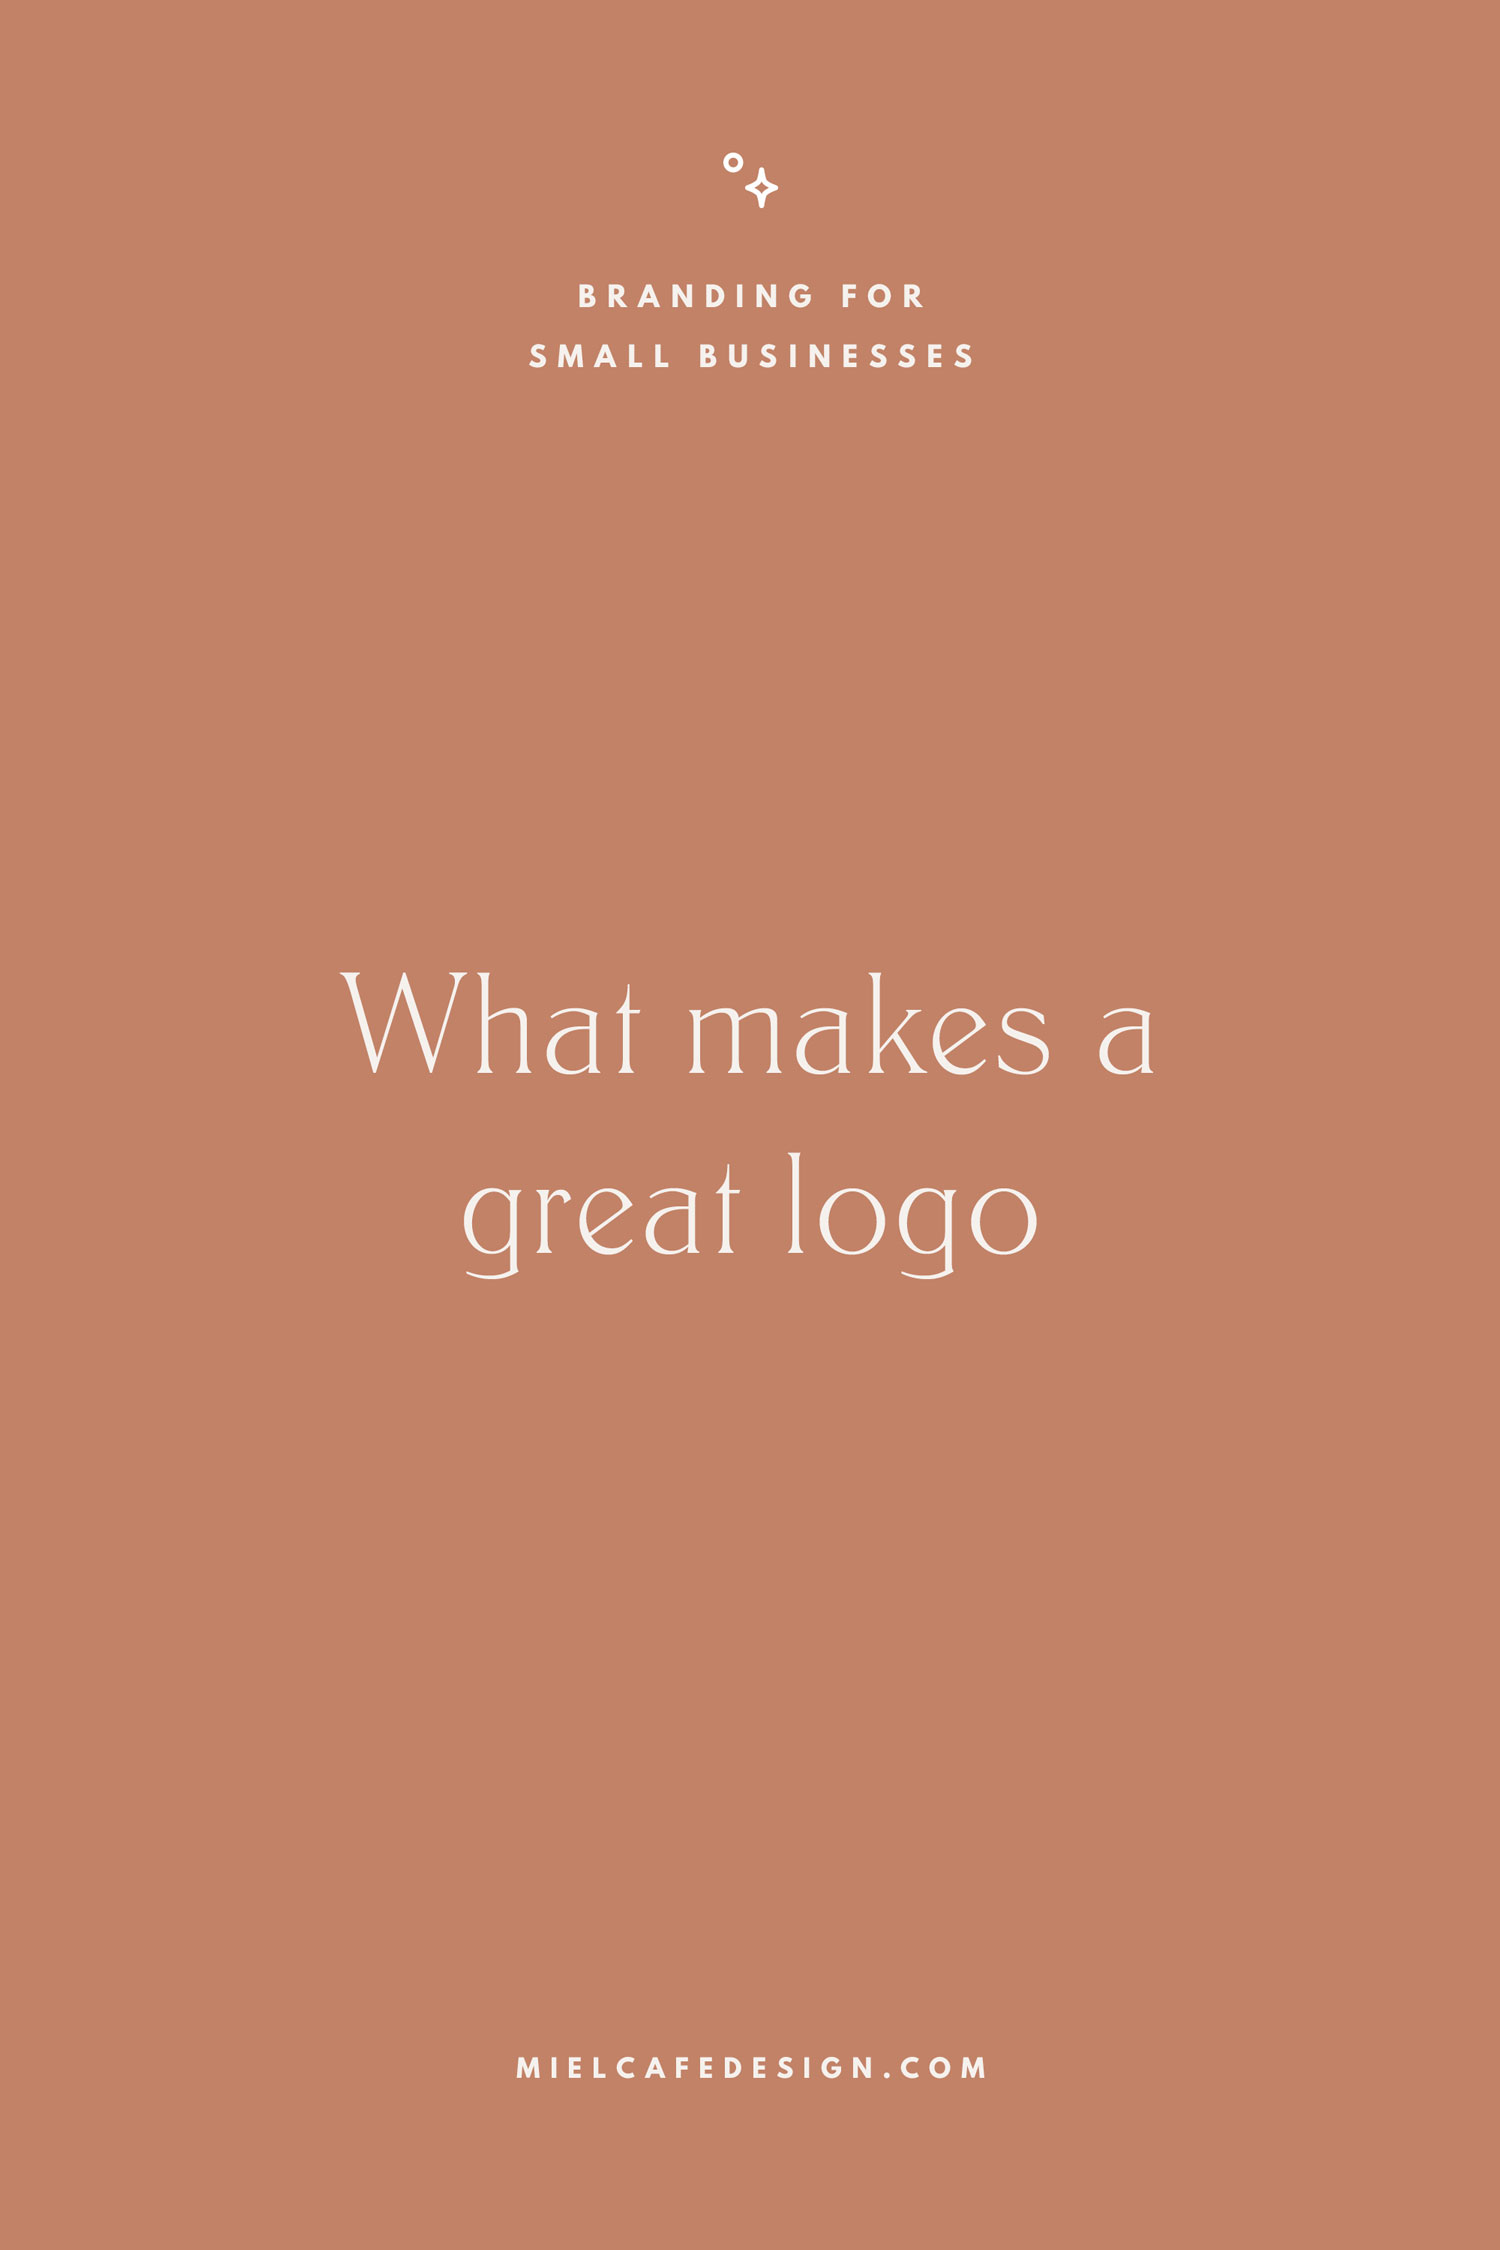 Branding for small businesses: what makes a great logo that functions as magnet for your ideal clients